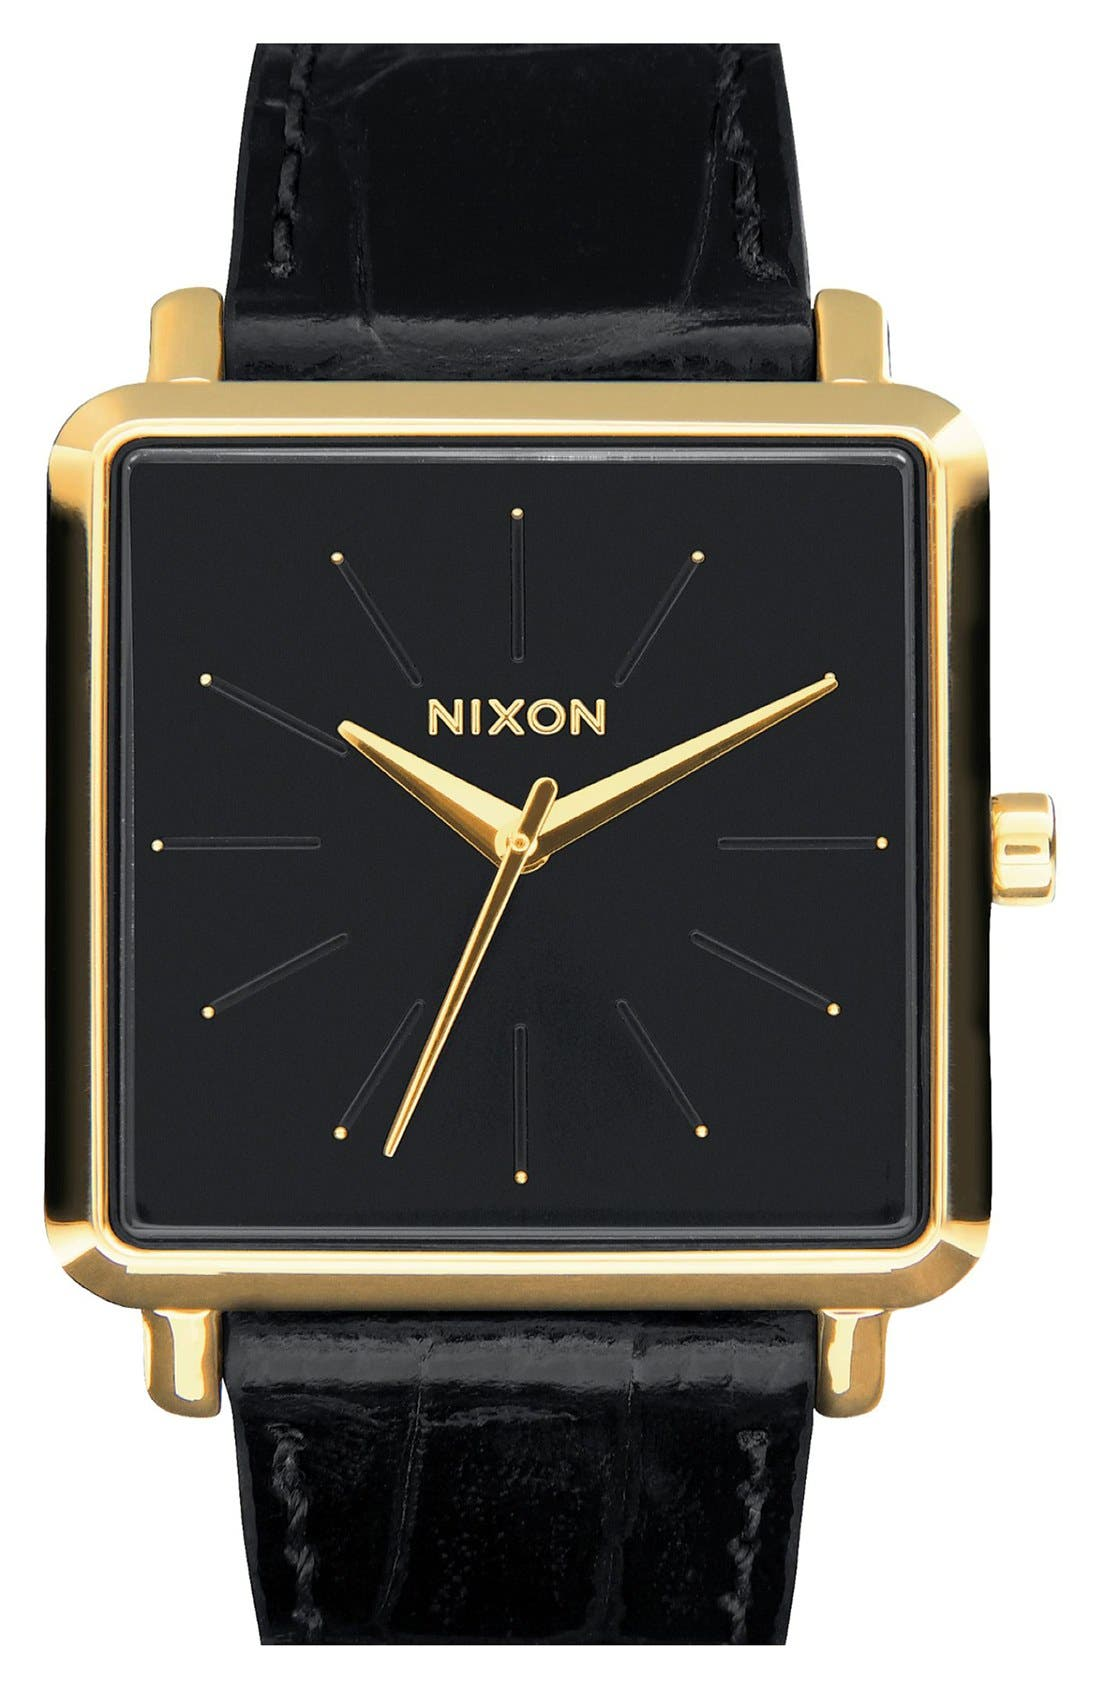 NIXON 'The K Squared' Leather Strap Watch, 32mm